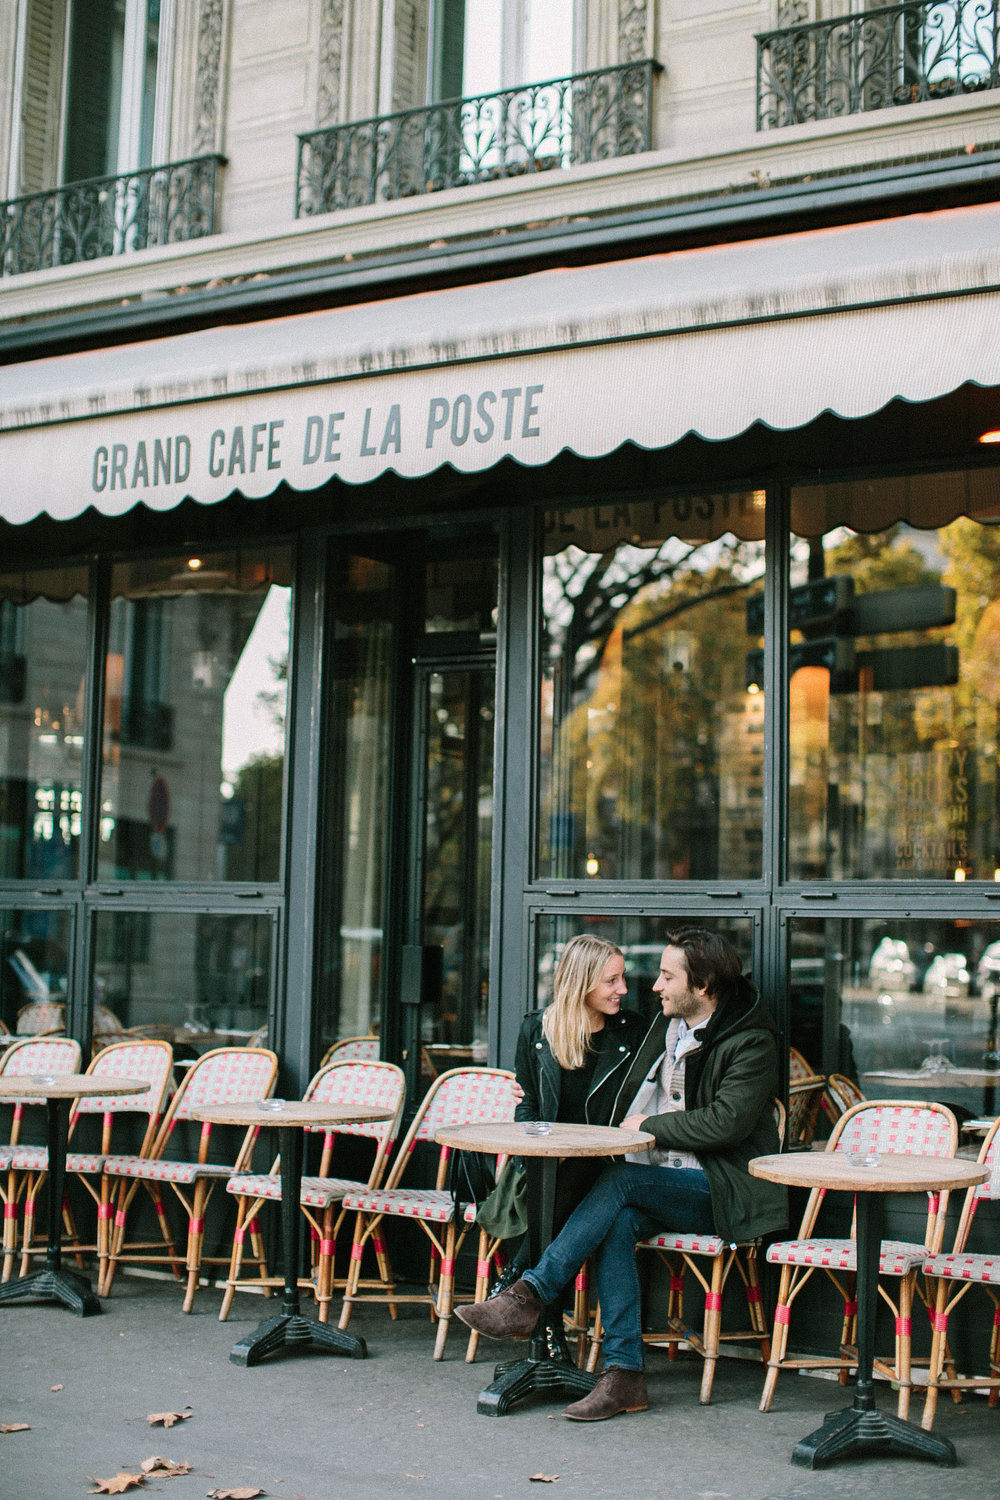 engagement-session-laurine-&-maxime-paris-wedding-photographer-couple-coffee-bistro-©-saya-photography-studio-ohlala-